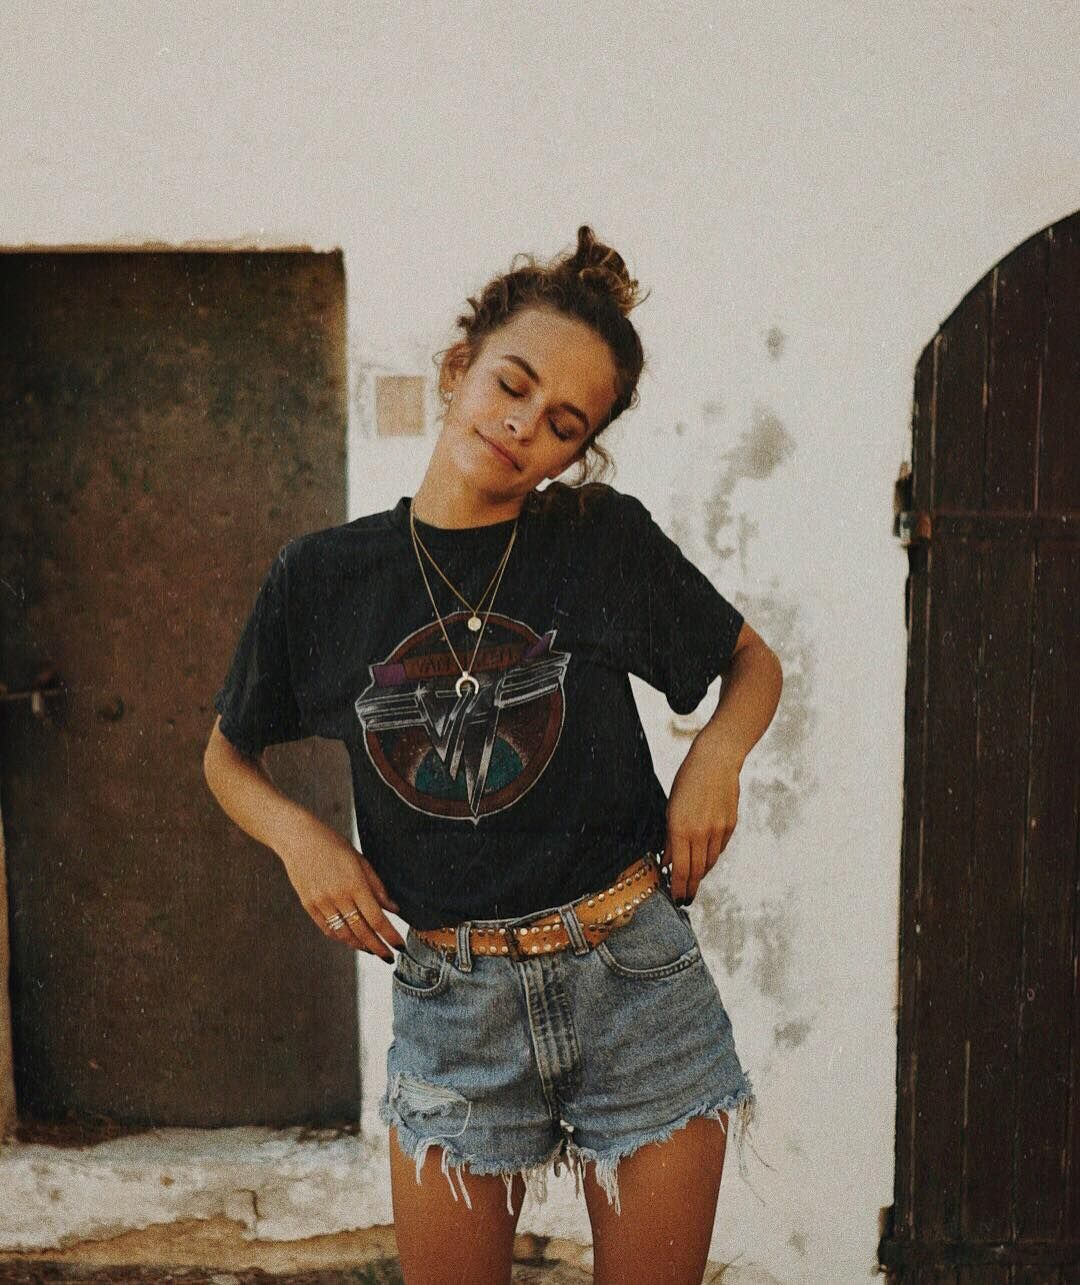 Hipster Frauen Mode Vanellimelli Summer Mode Hipster Outfits Outfit Und